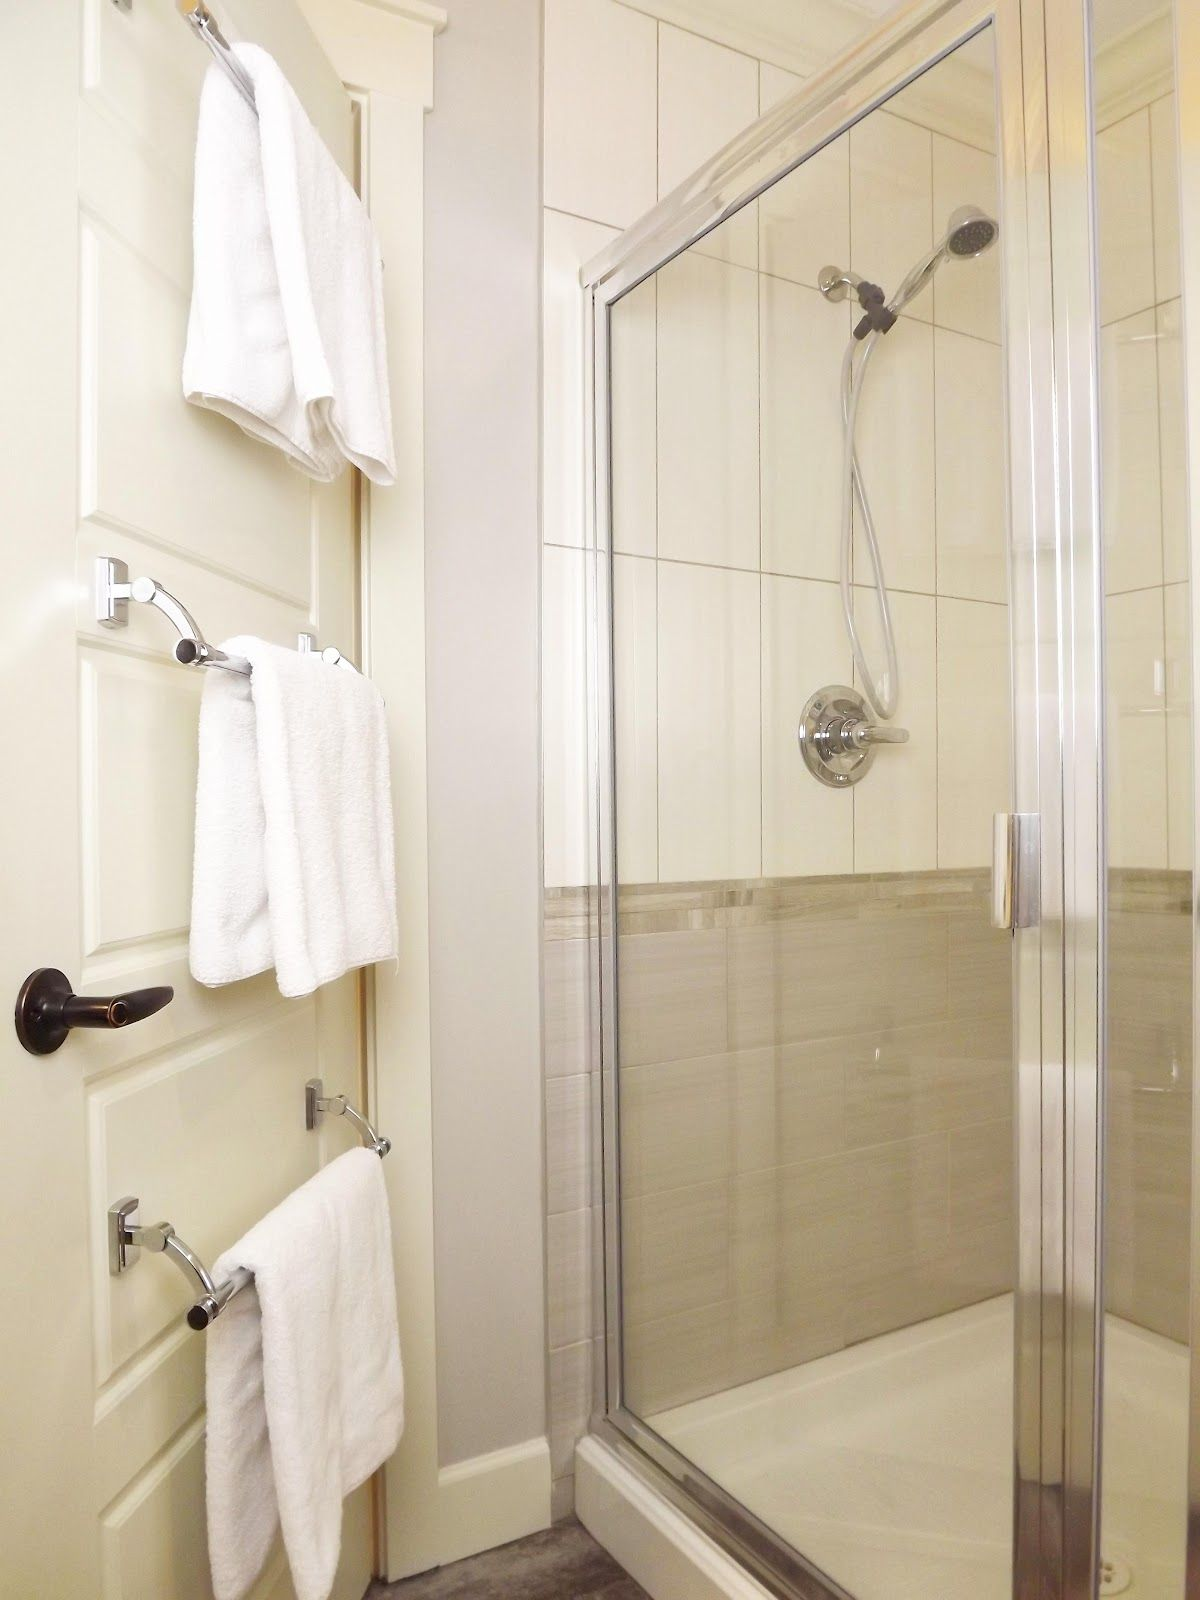 If You Have A Solid Wood Door You Can Put More Than One Towel Bar - Towel rails for small bathrooms for small bathroom ideas